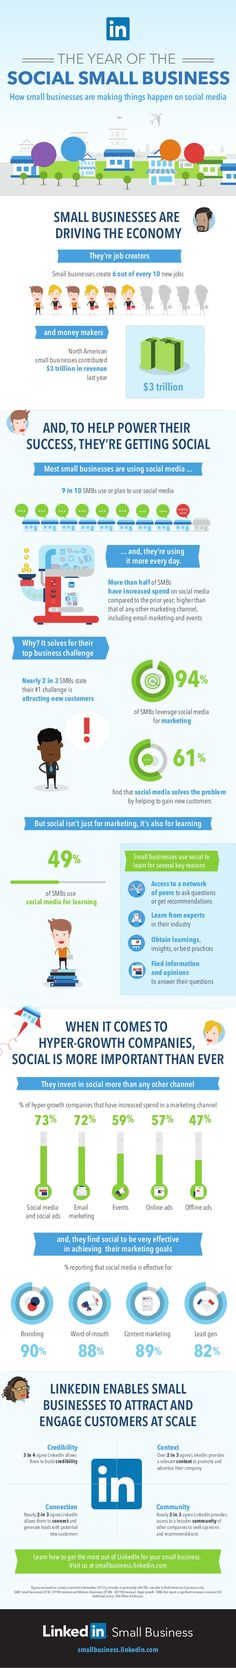 The Year of the Social Small Business by LinkedIn for Small Business #socialmedia #infographic